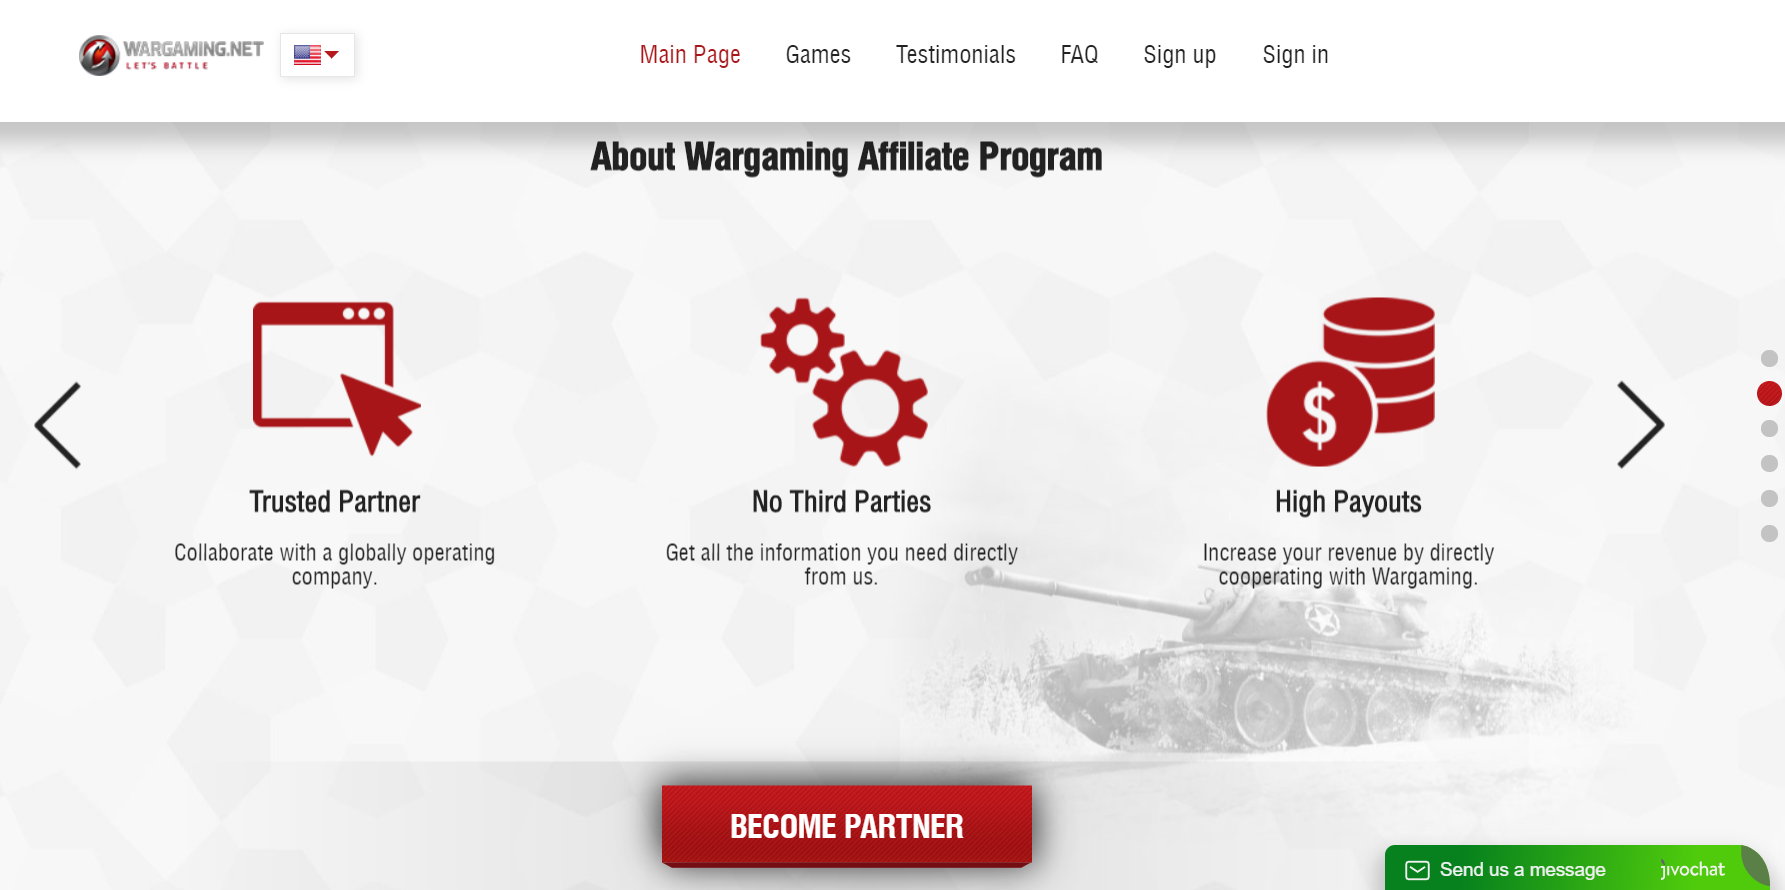 screenshot from wargaming.com encouraging gamers to sign up to the war gaming affiliate program.